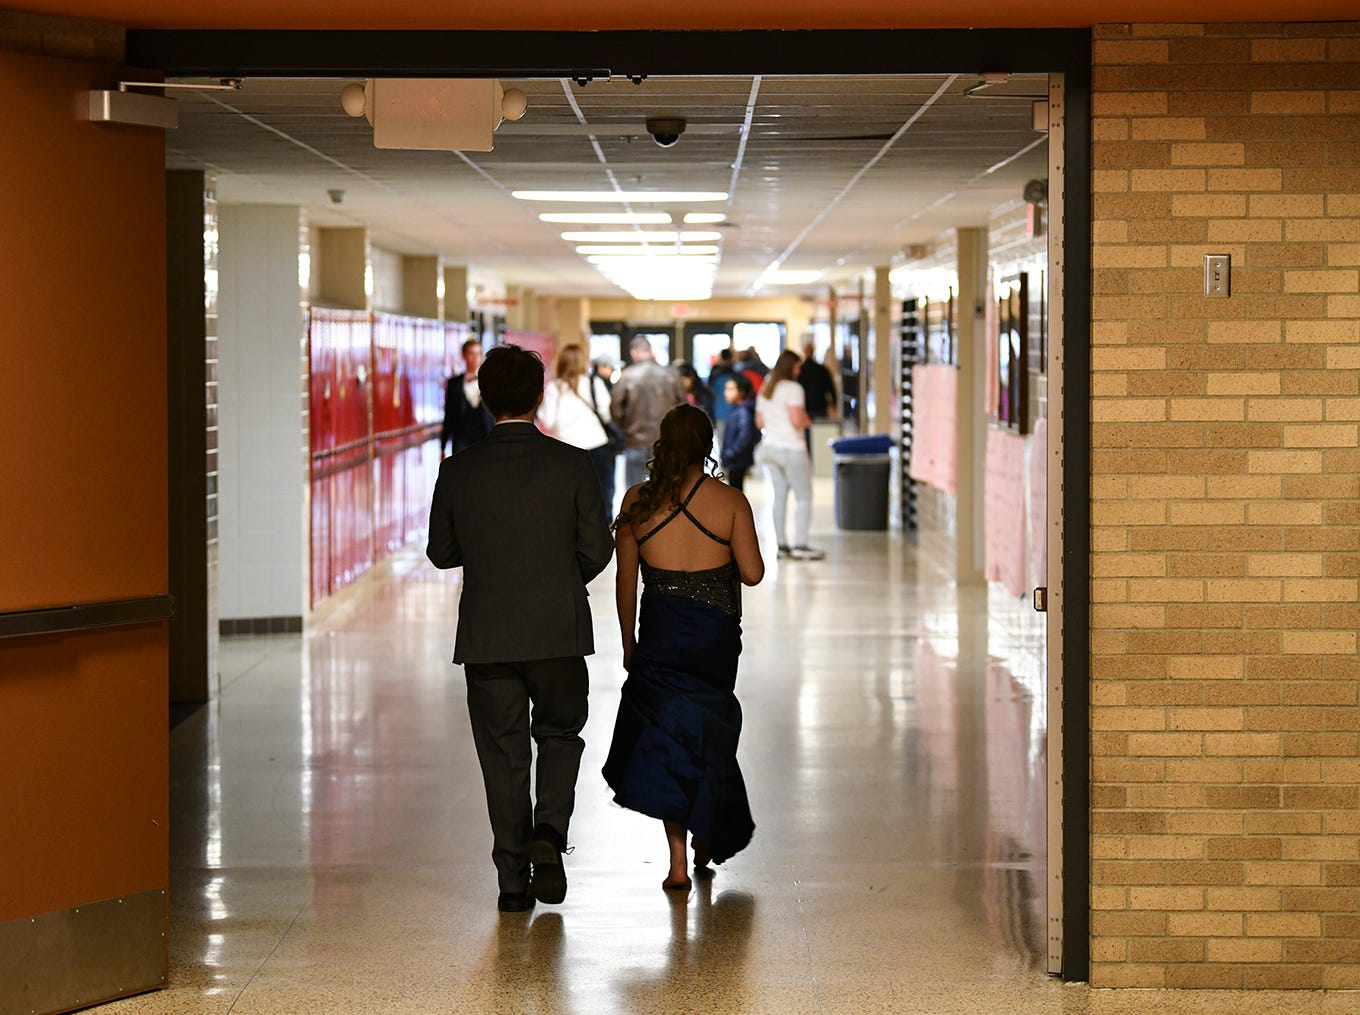 Promgoers leave the gymnasium following prom grand march Saturday, April 13, at ROCORI High School in Cold Spring.